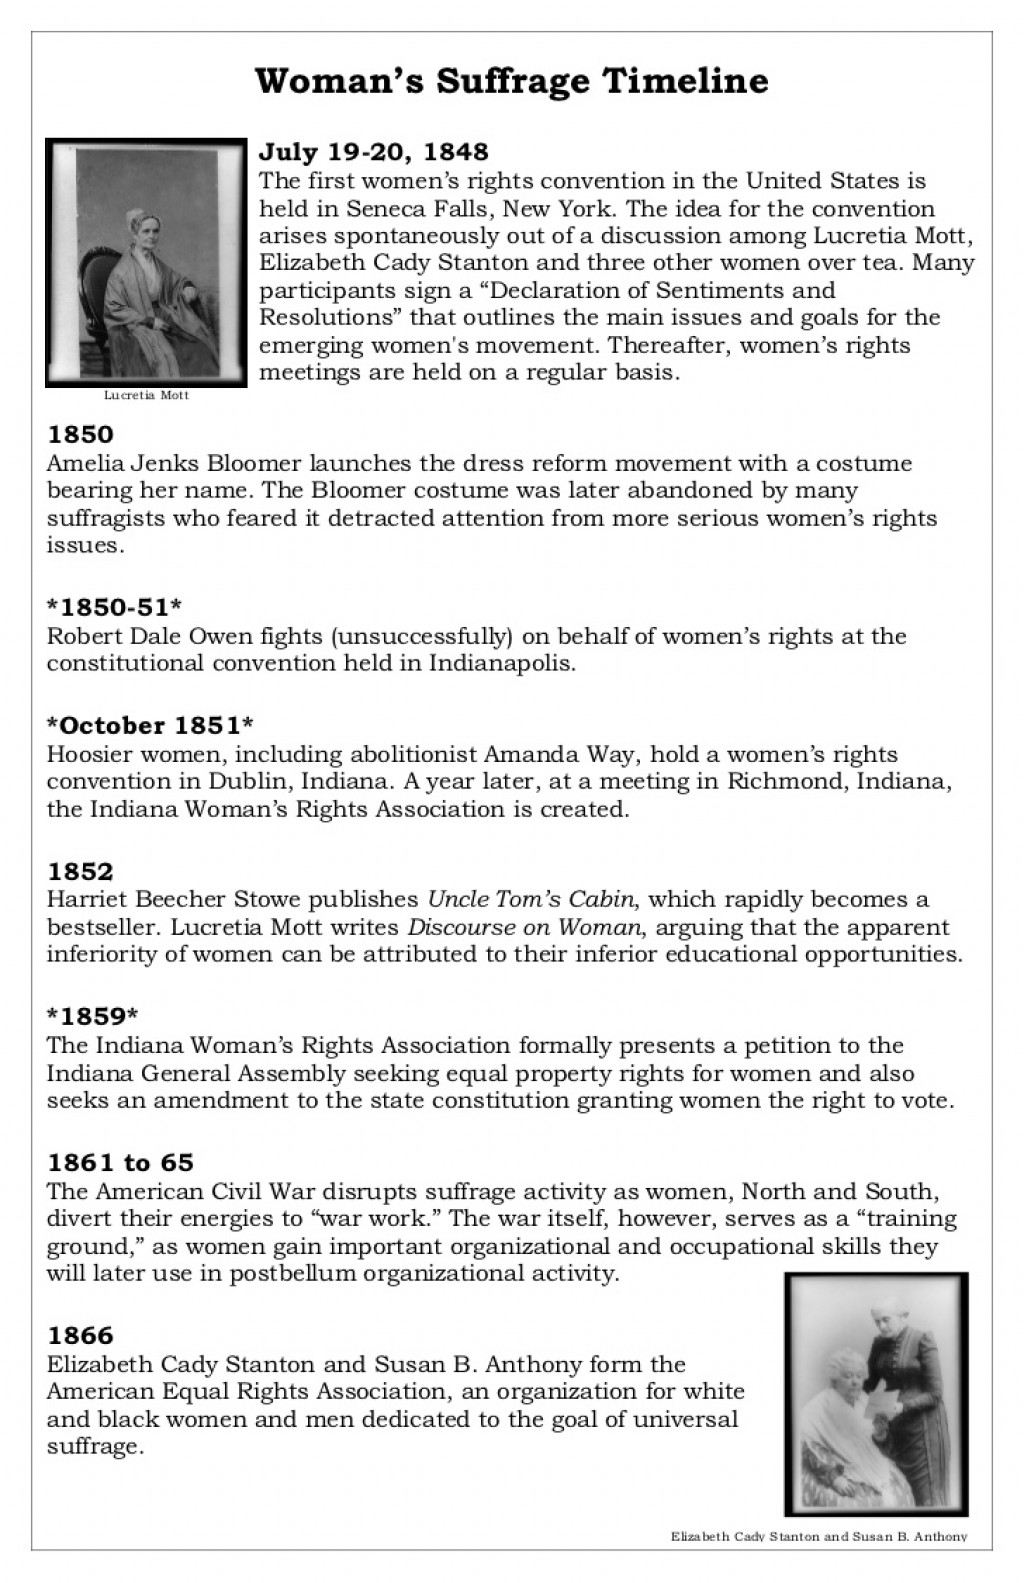 008 Essay Example Womens Rights Suffrage Timeline Archaicawful Women's Movement Questions In Tamil Large